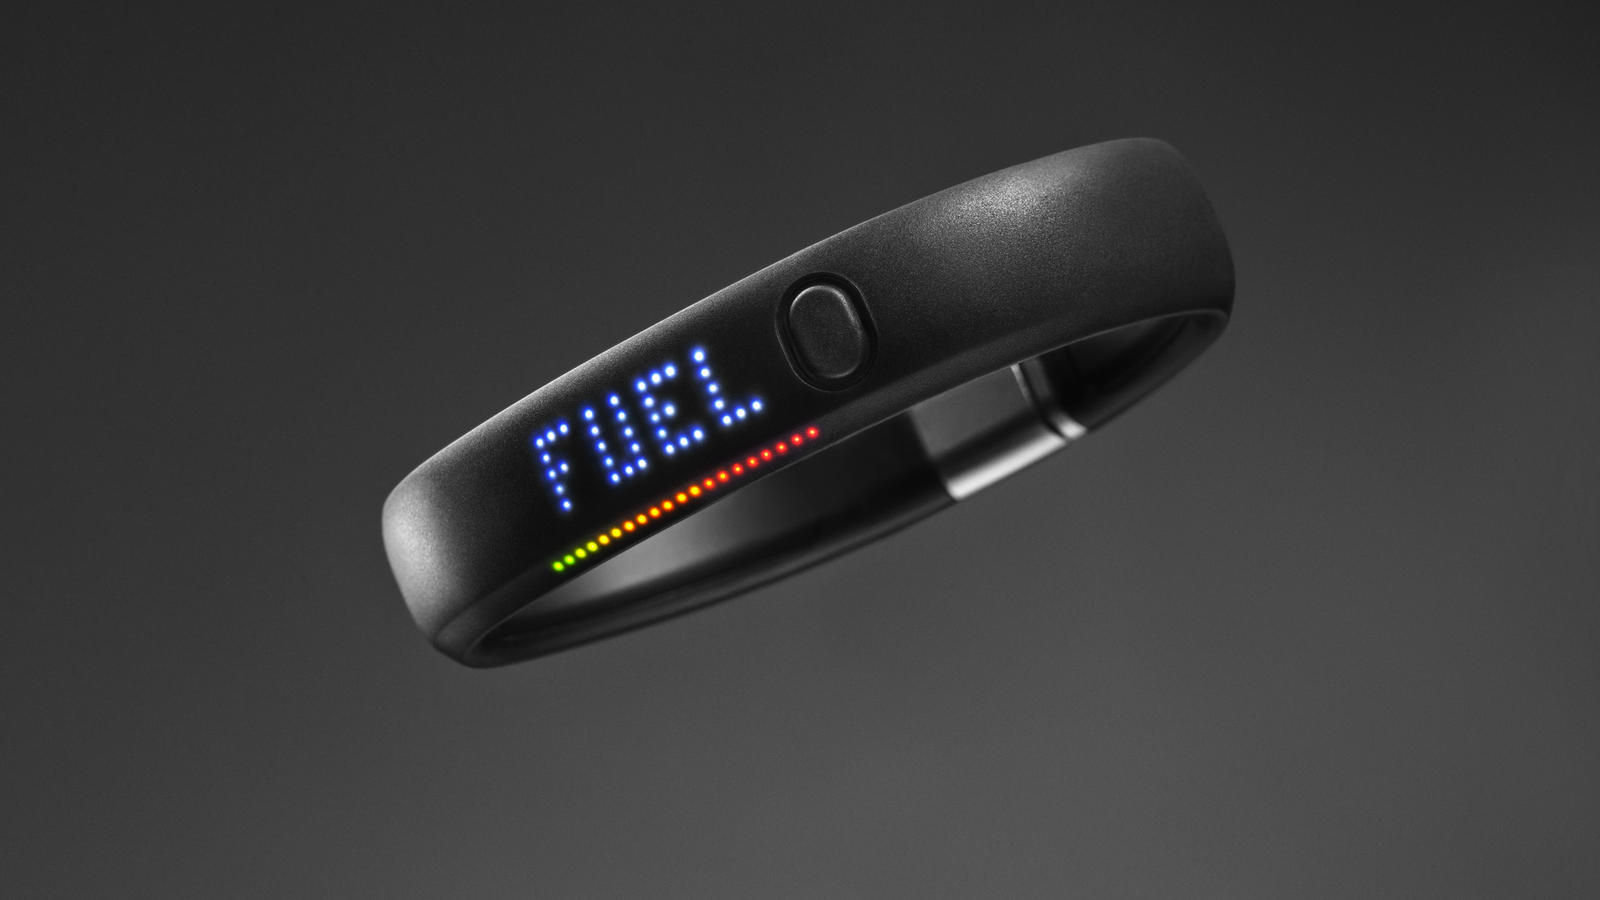 The Latest Nike FuelBand is Still Kind of a Glorified Pedometer